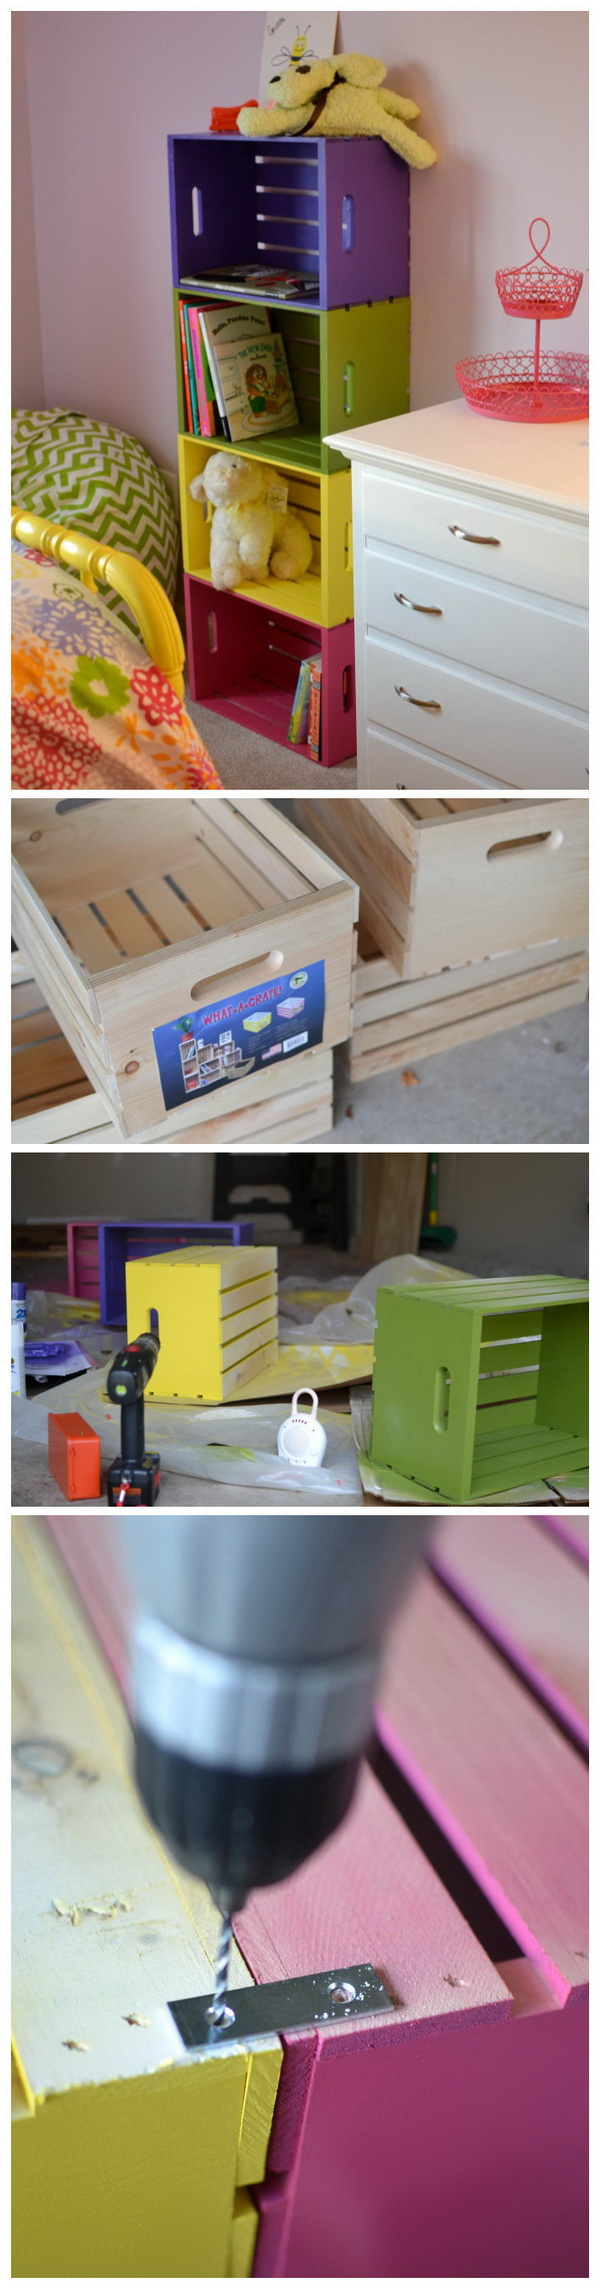 Colorful Wood Crate Bookcase. Make a fun colorful bookshelf from crates that easily pop up and organize your kids' room.